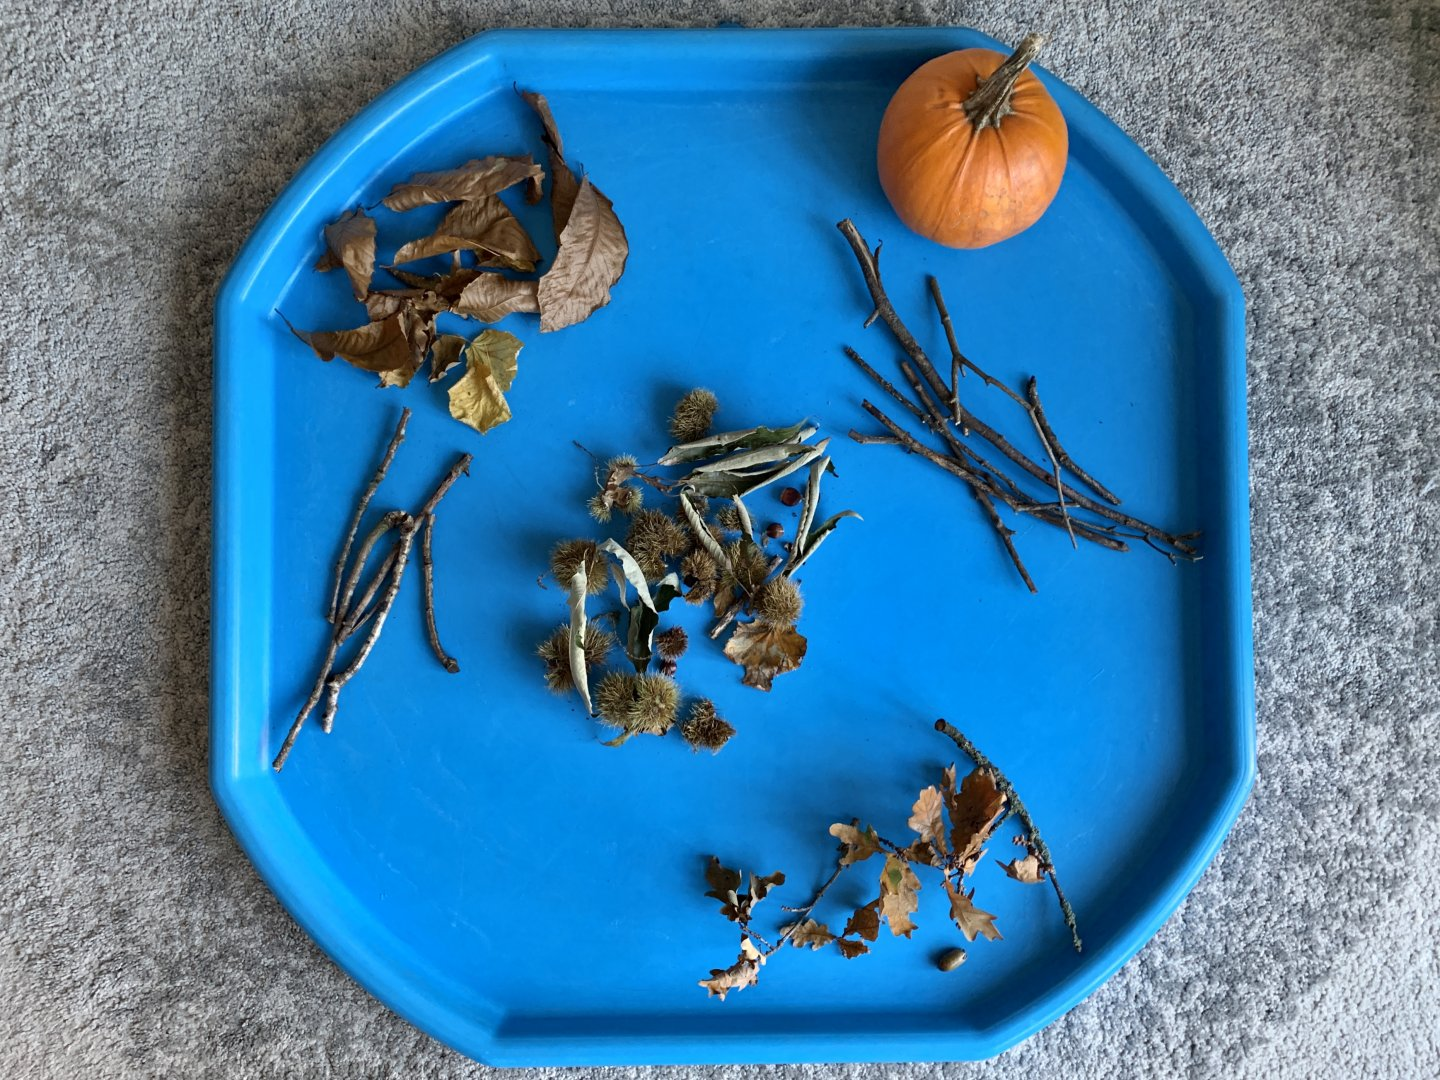 Autumn exploration set up - a bird's eye view of the tuff spot. Clockwise from top right: A pumpkin, a collection of sticks, some oak leaves attached to twigs, more sticks, a collection of brown leaves. Sweet chestnut leaves, cases and nuts are in the centre.